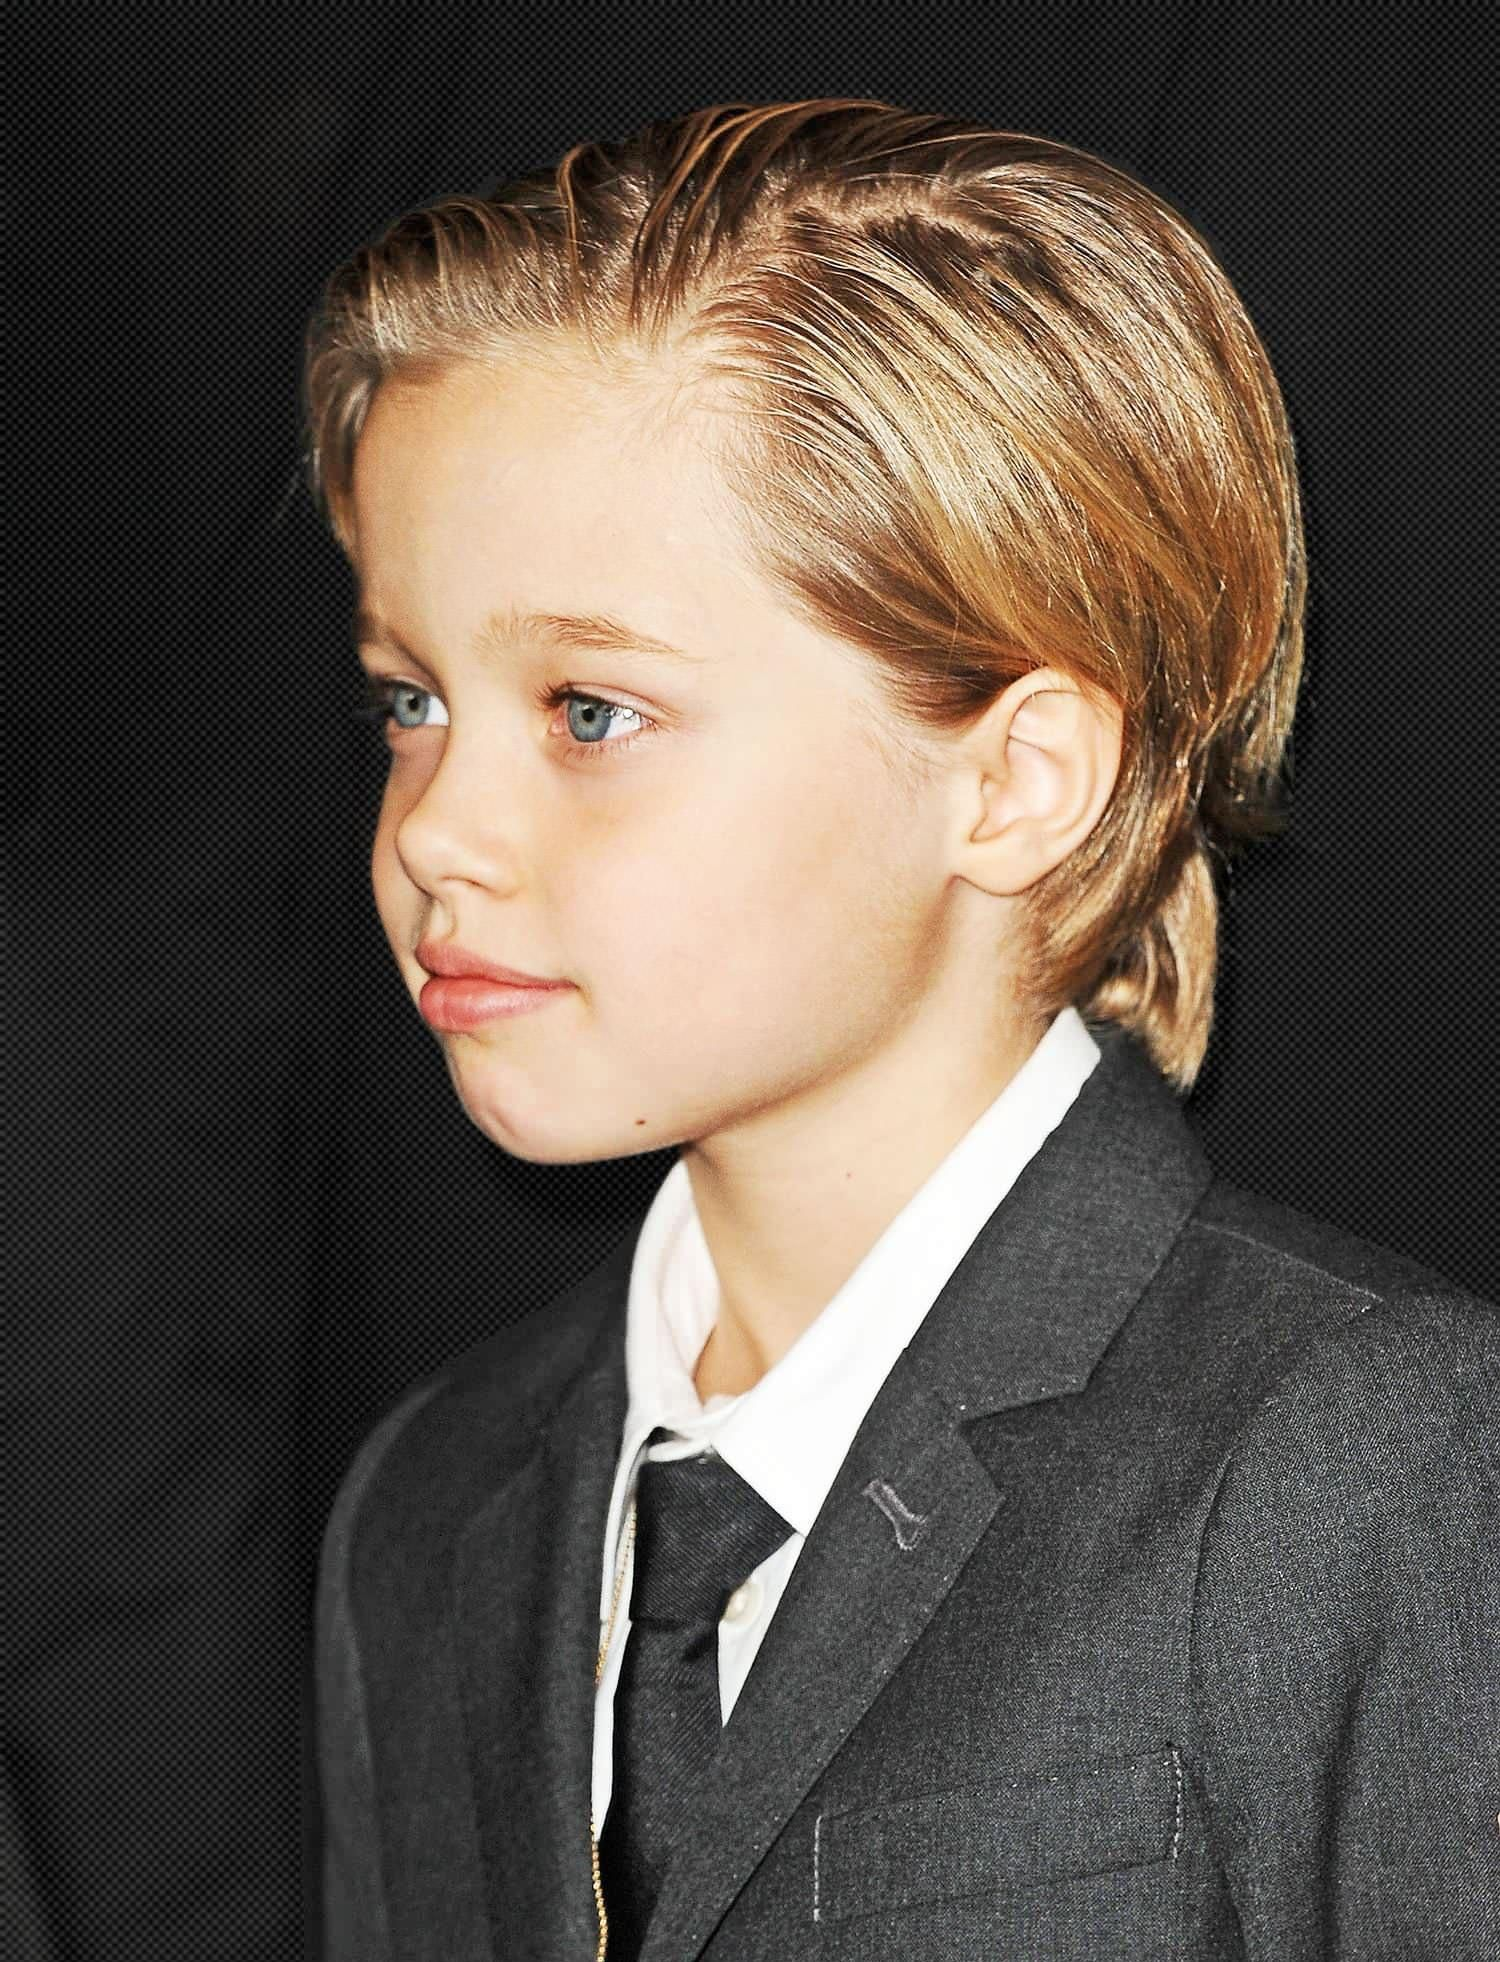 Shiloh Jolie Pitt Steals The Spotlight In A Suit News To Me